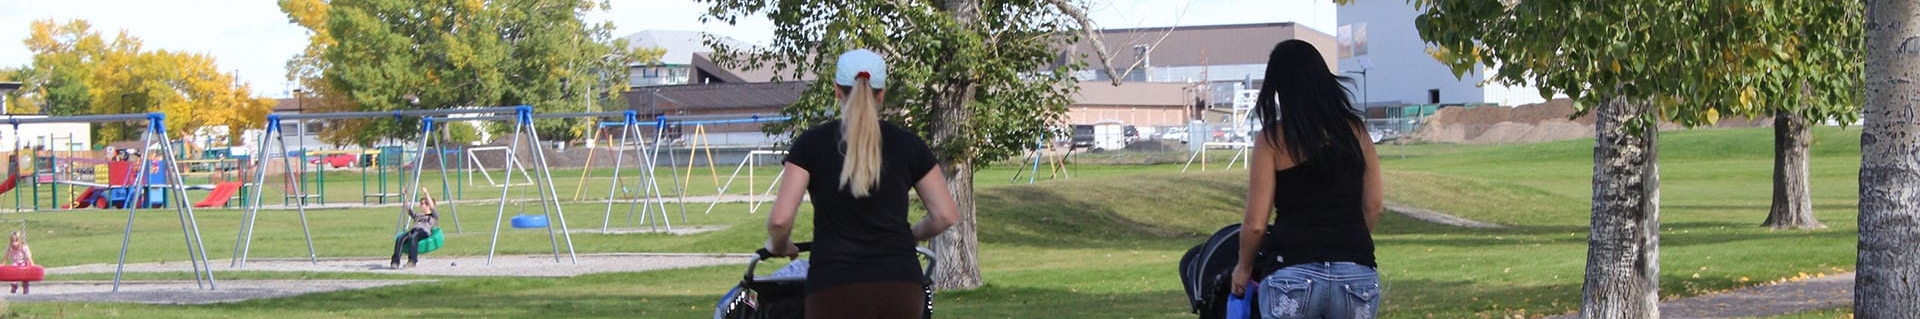 Two young women pushing strollers through a park in the summer time